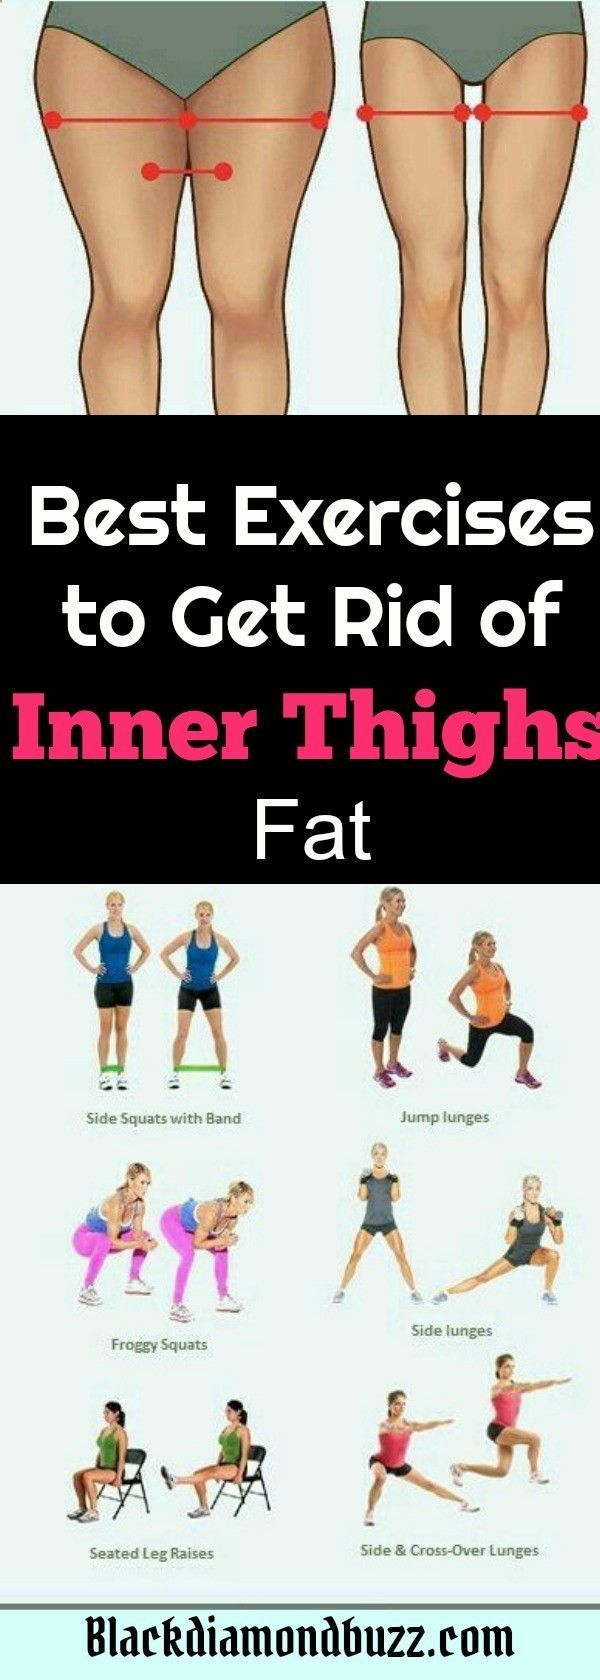 Excersices For Legs At Home and At The Gym   Posted By: CustomWeightLossProgram.com #lose10pounds